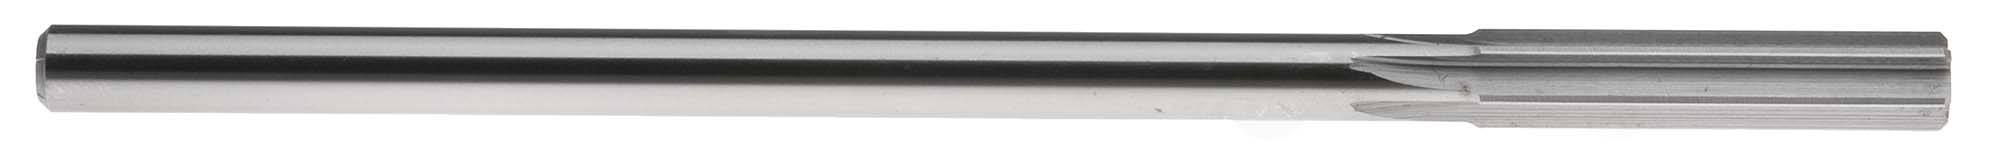 "#1 (.2280"") Straight Shank Chucking Reamer, Straight Flute, High Speed Steel"